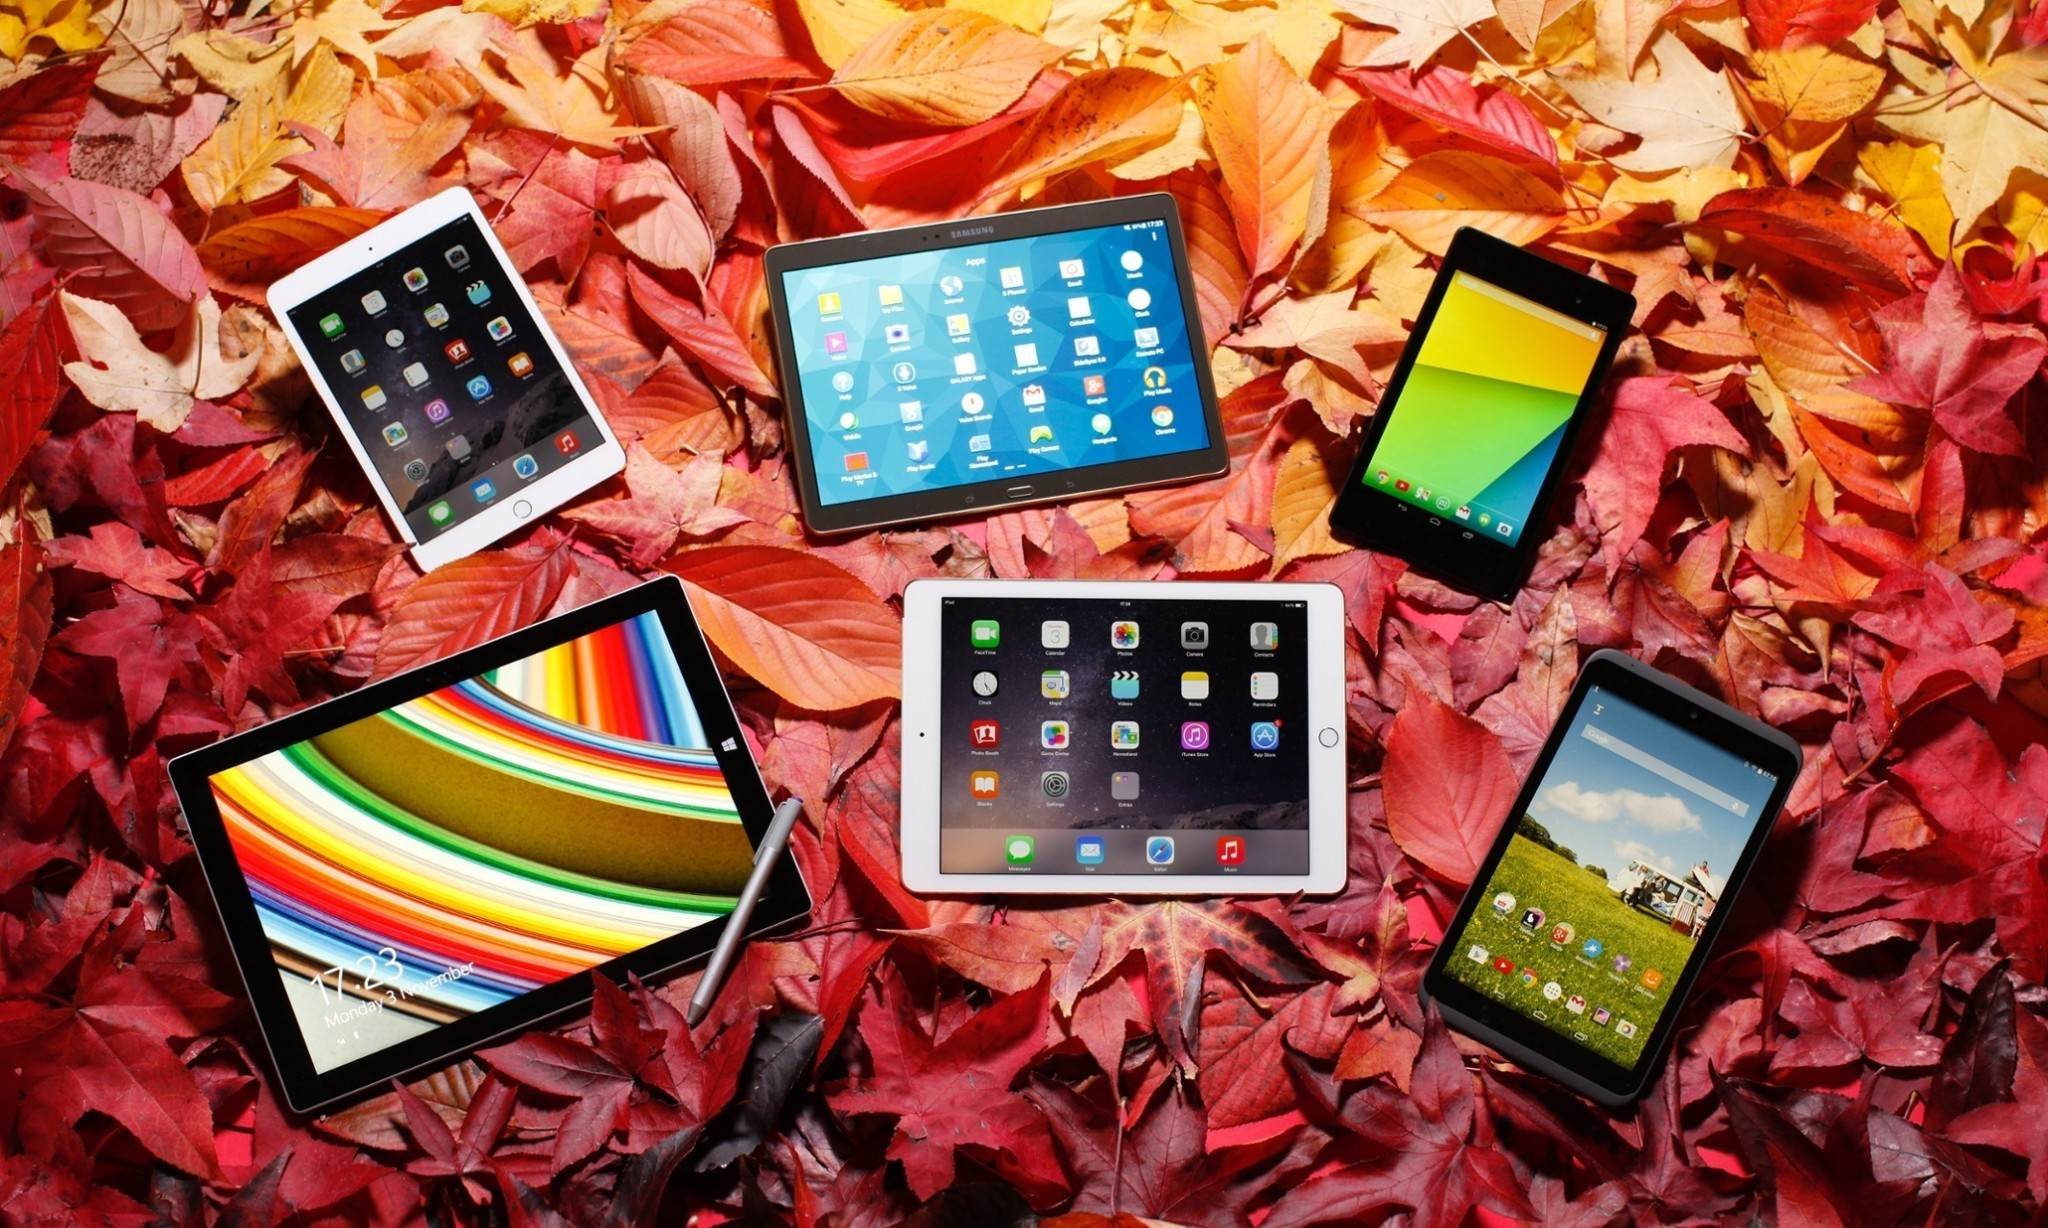 Which is the best tablet for Christmas?